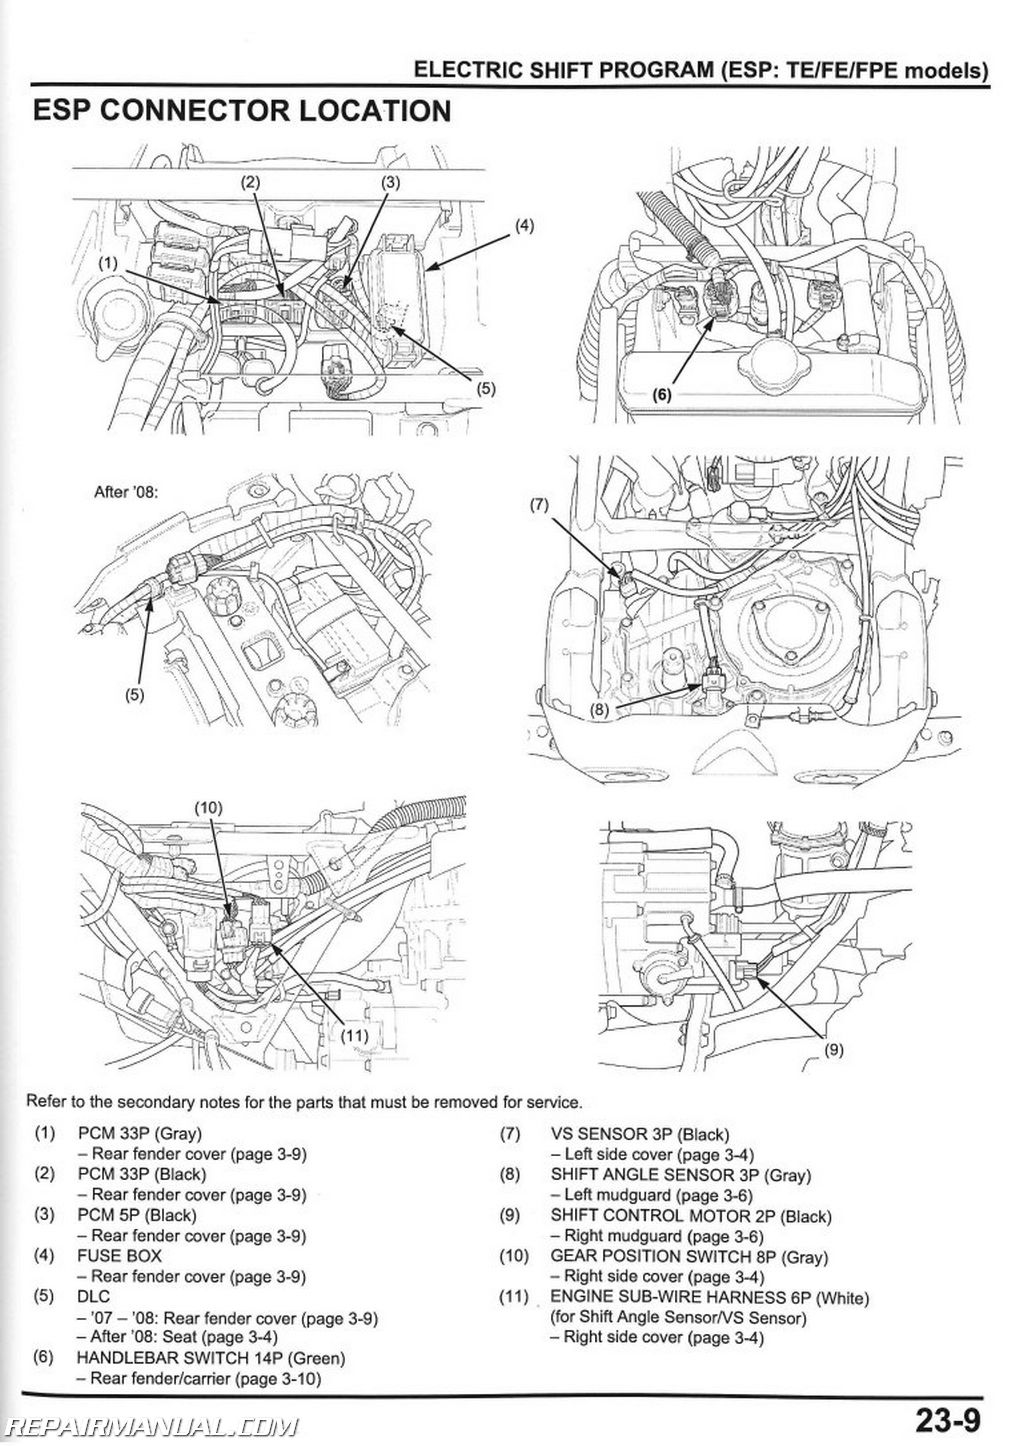 hight resolution of honda rancher esp wiring diagram simple wiring schema honda rancher parts diagram 2007 2013 honda trx420fe